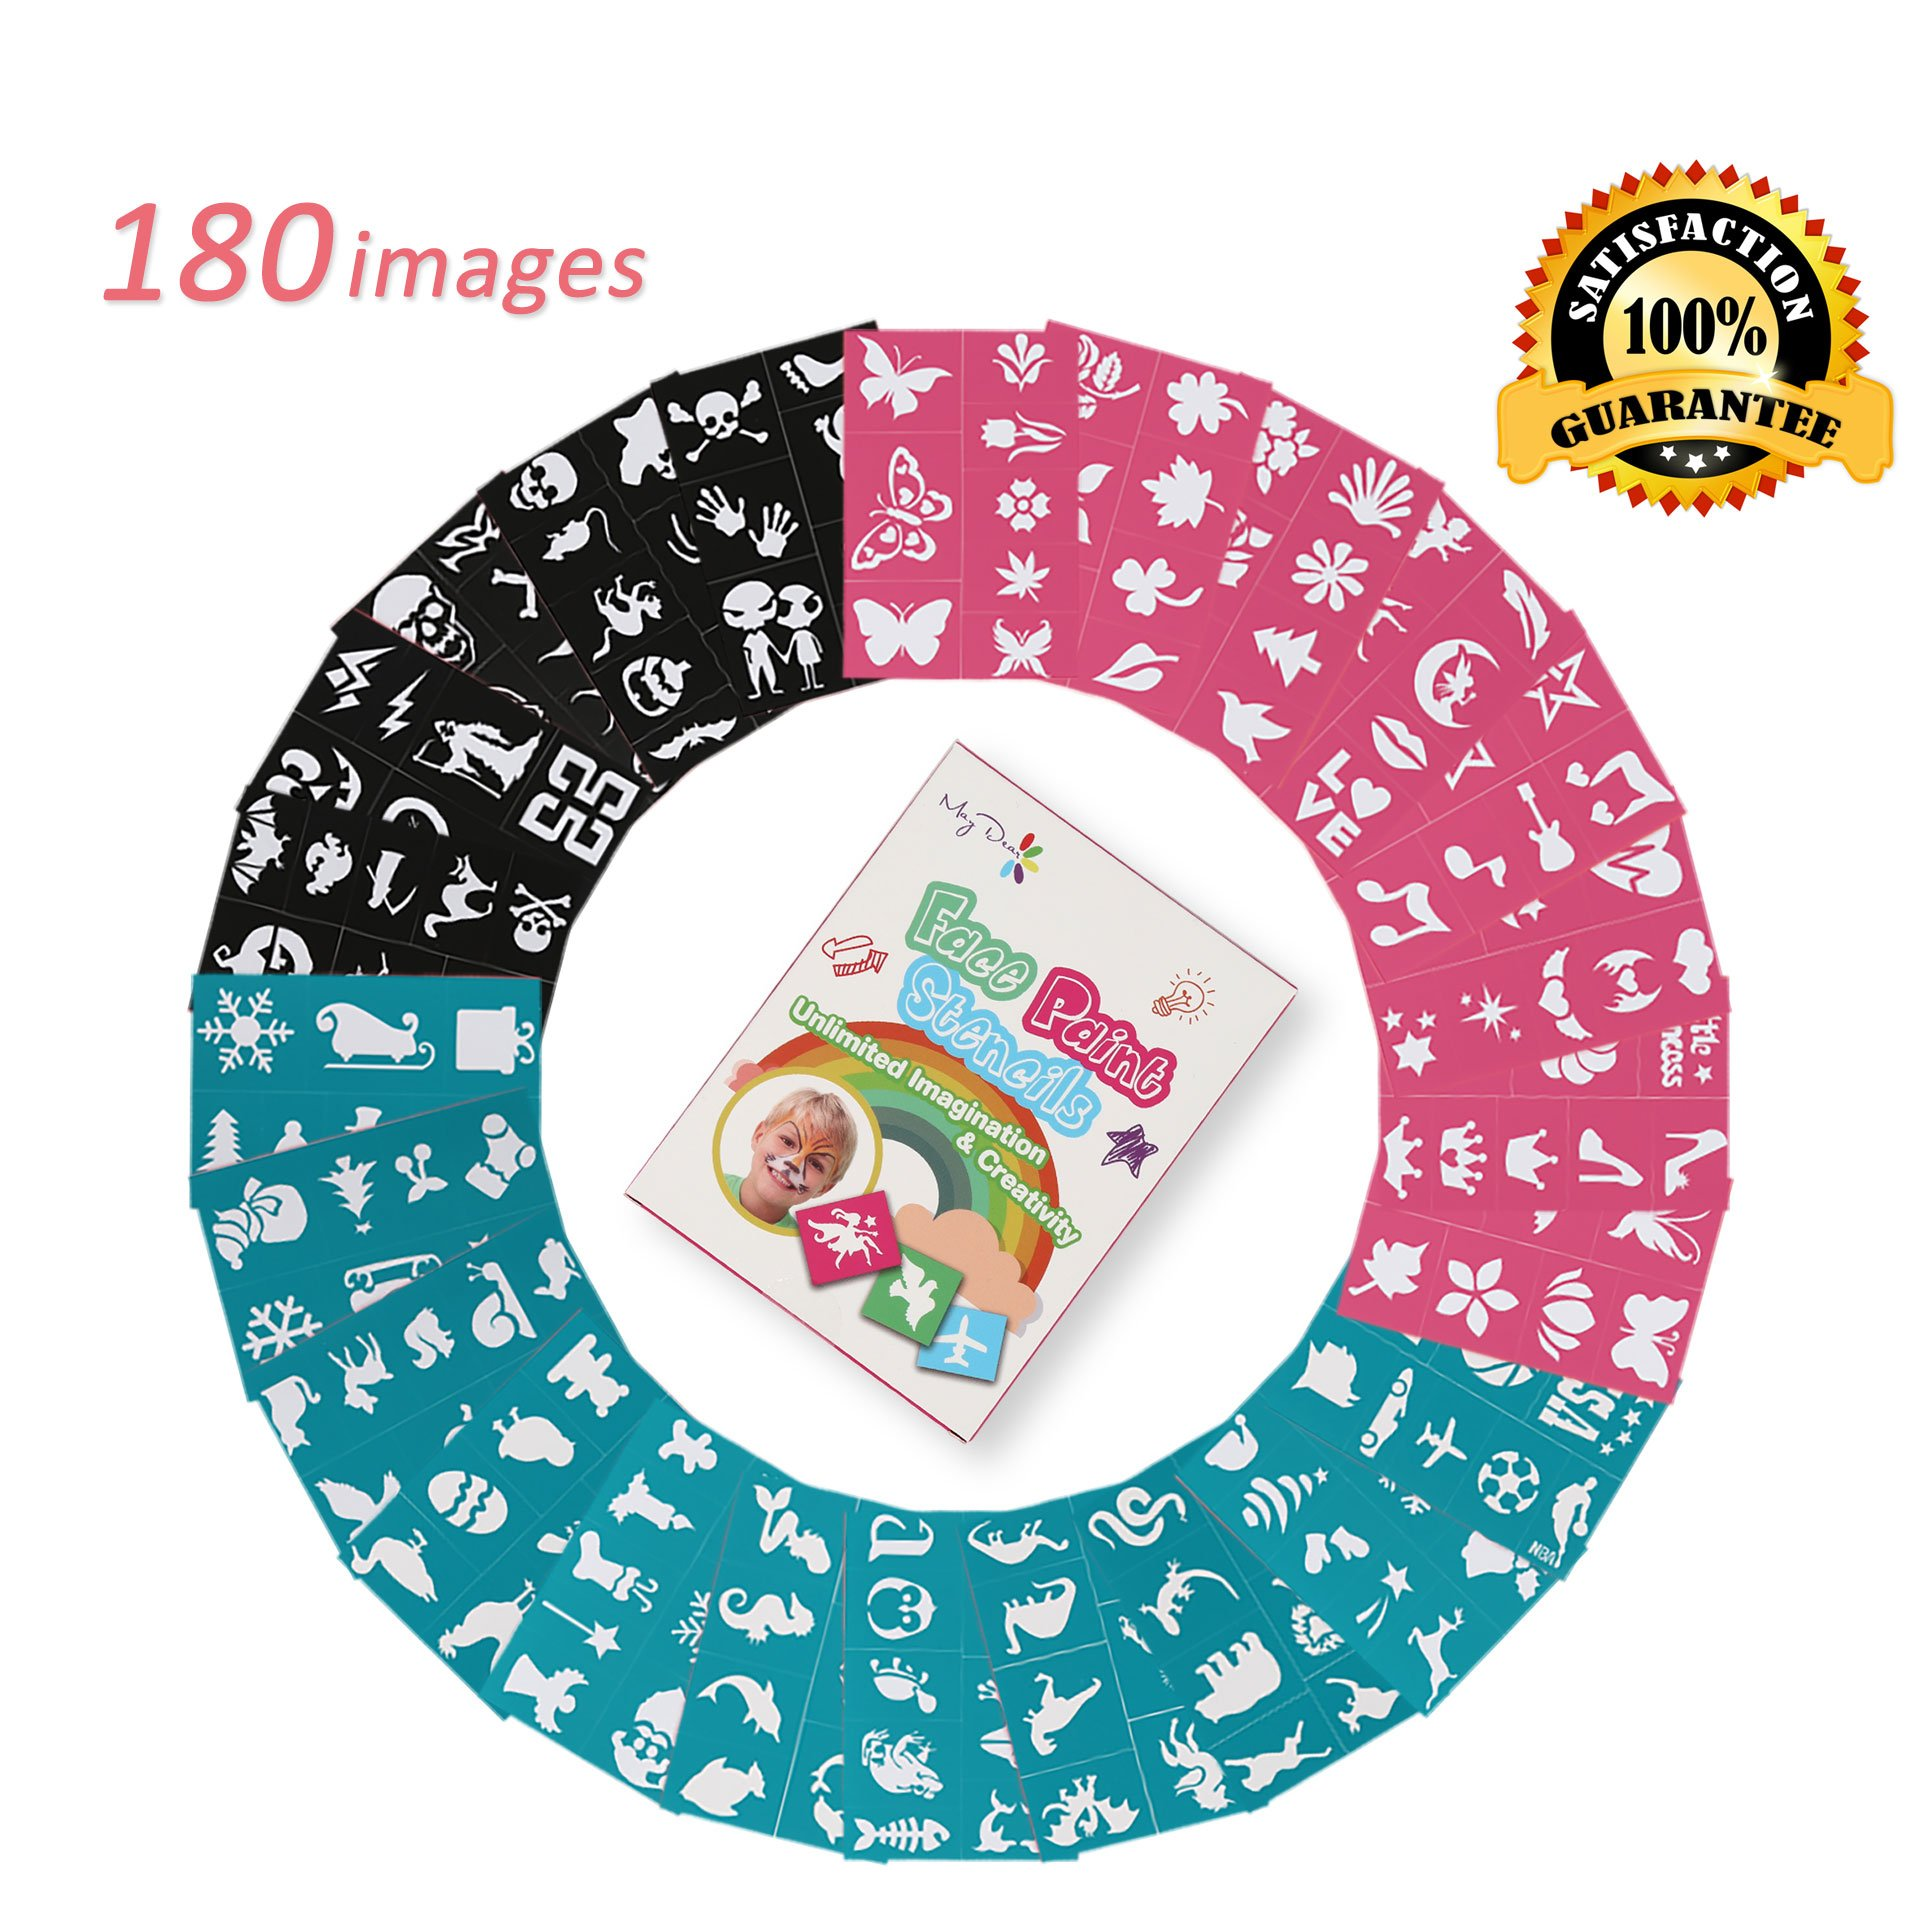 Face Paint Stencils for Kids (180 Designs) - Reusable, Soft and Easy to Stick Down, Non-Toxic to Kids and Perfect for Parties, Christmas, Halloween, Carnivals, School & Church Events